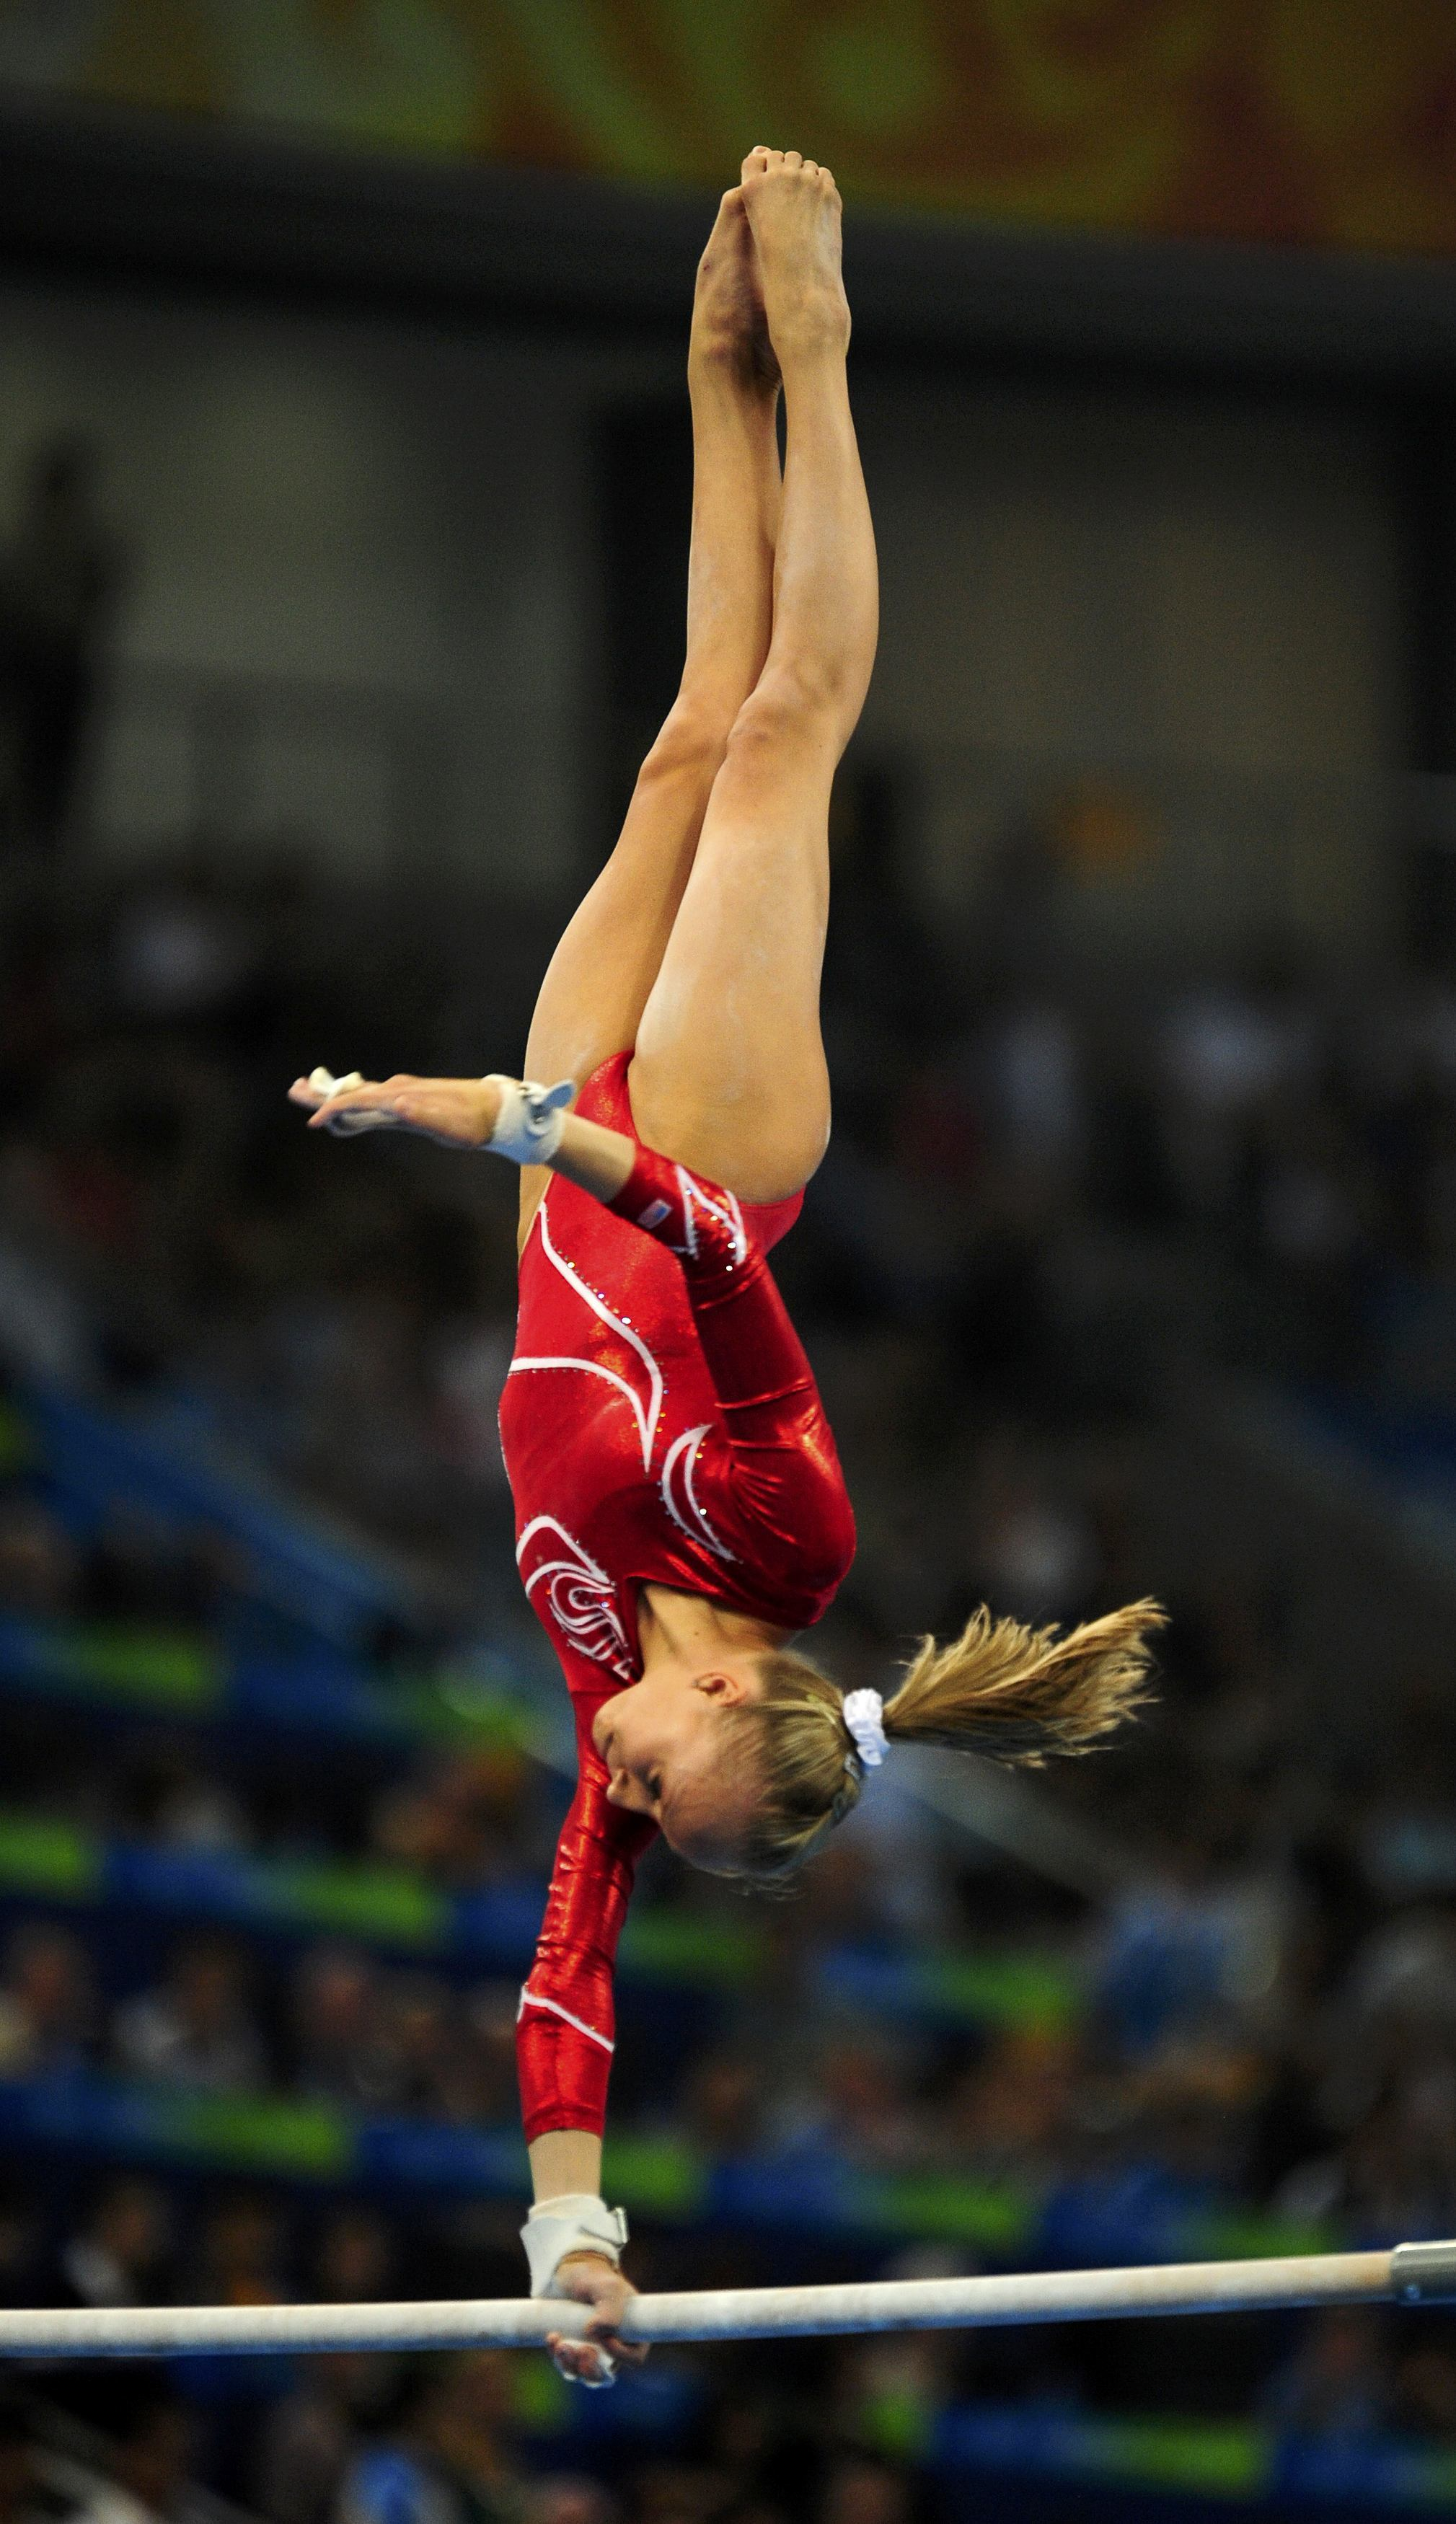 People shawn johnson Celebrity